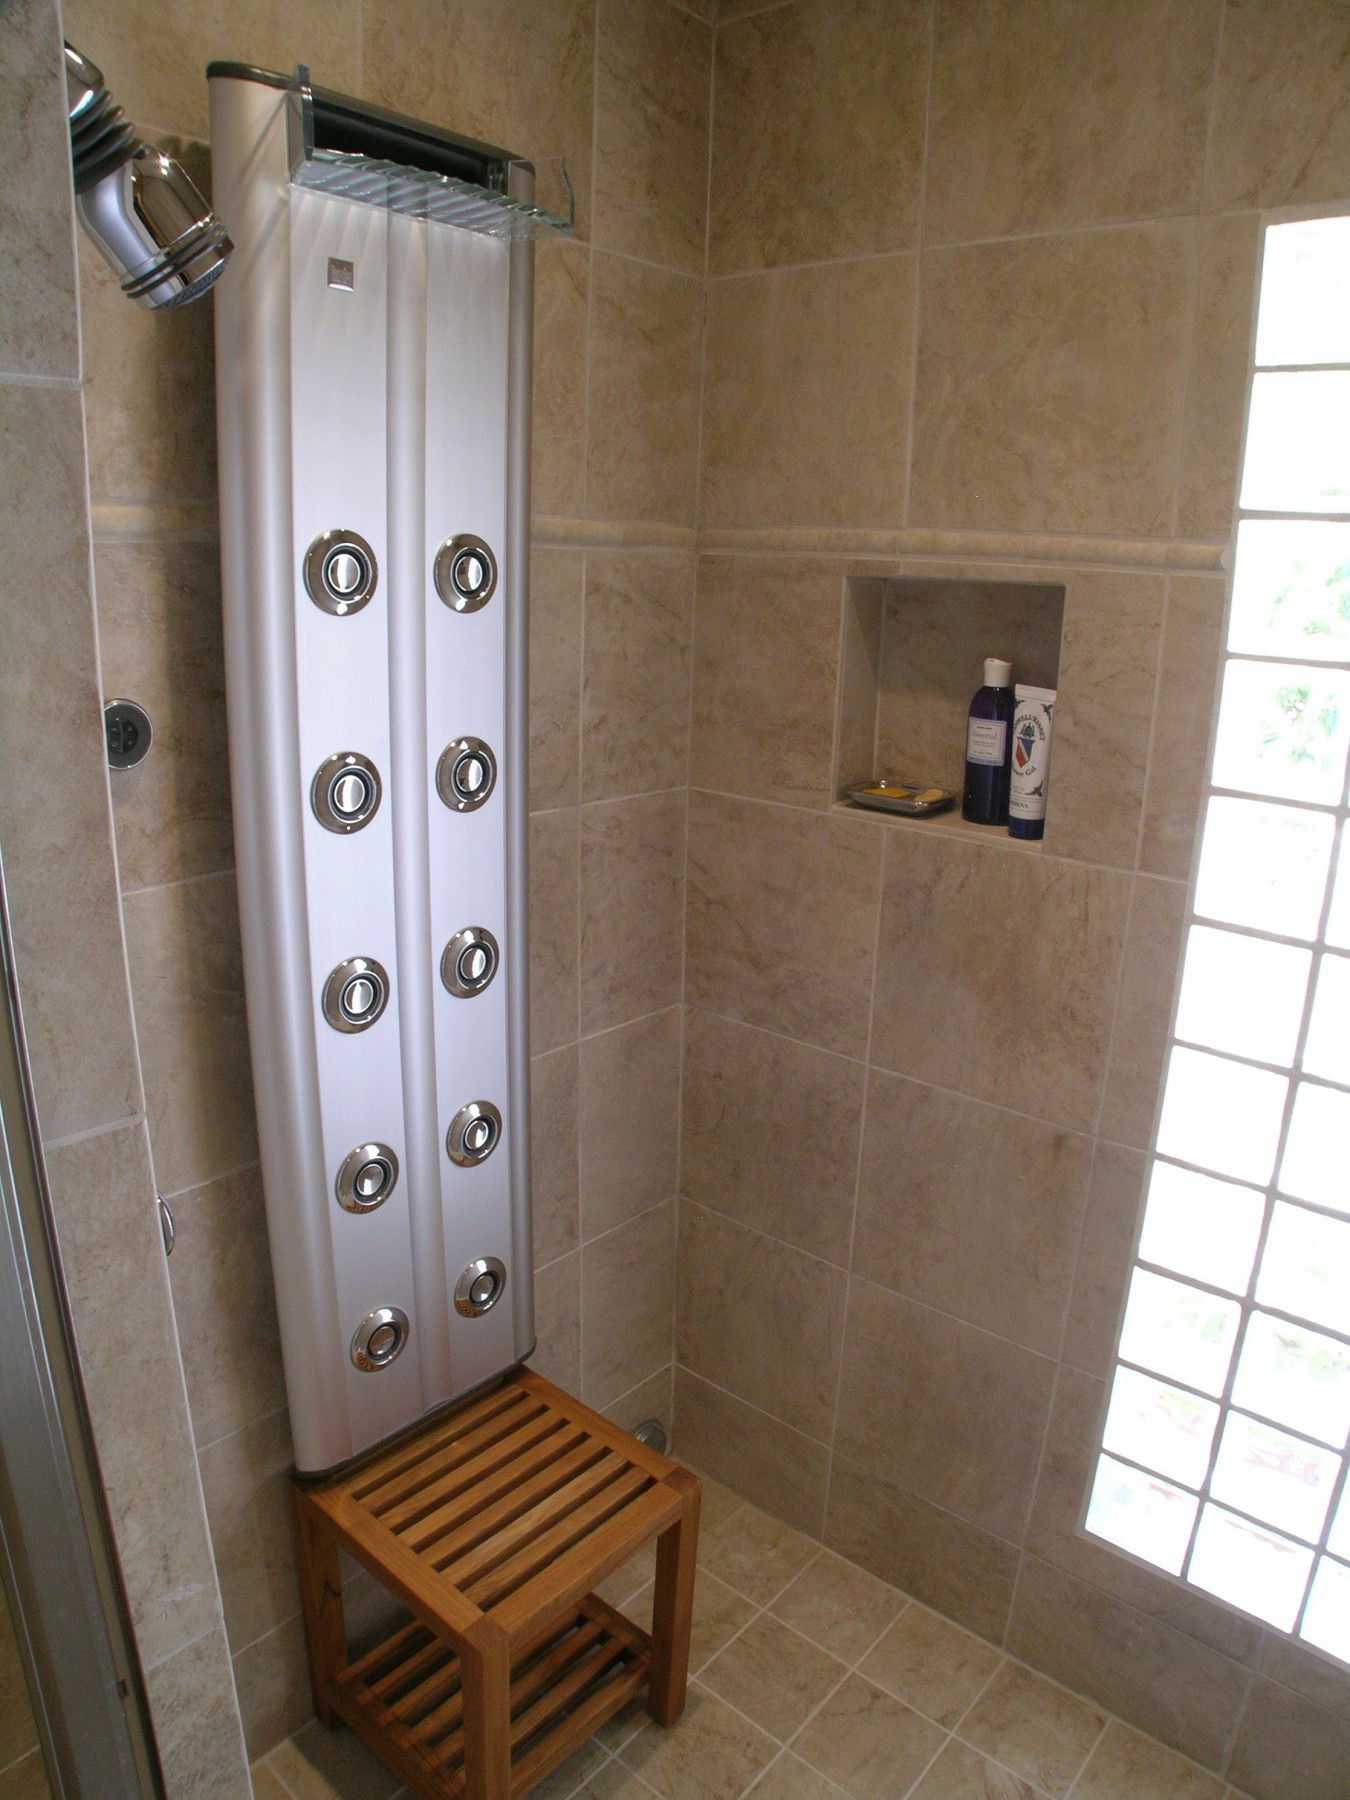 A full shower with waterfall plumbing fixture.